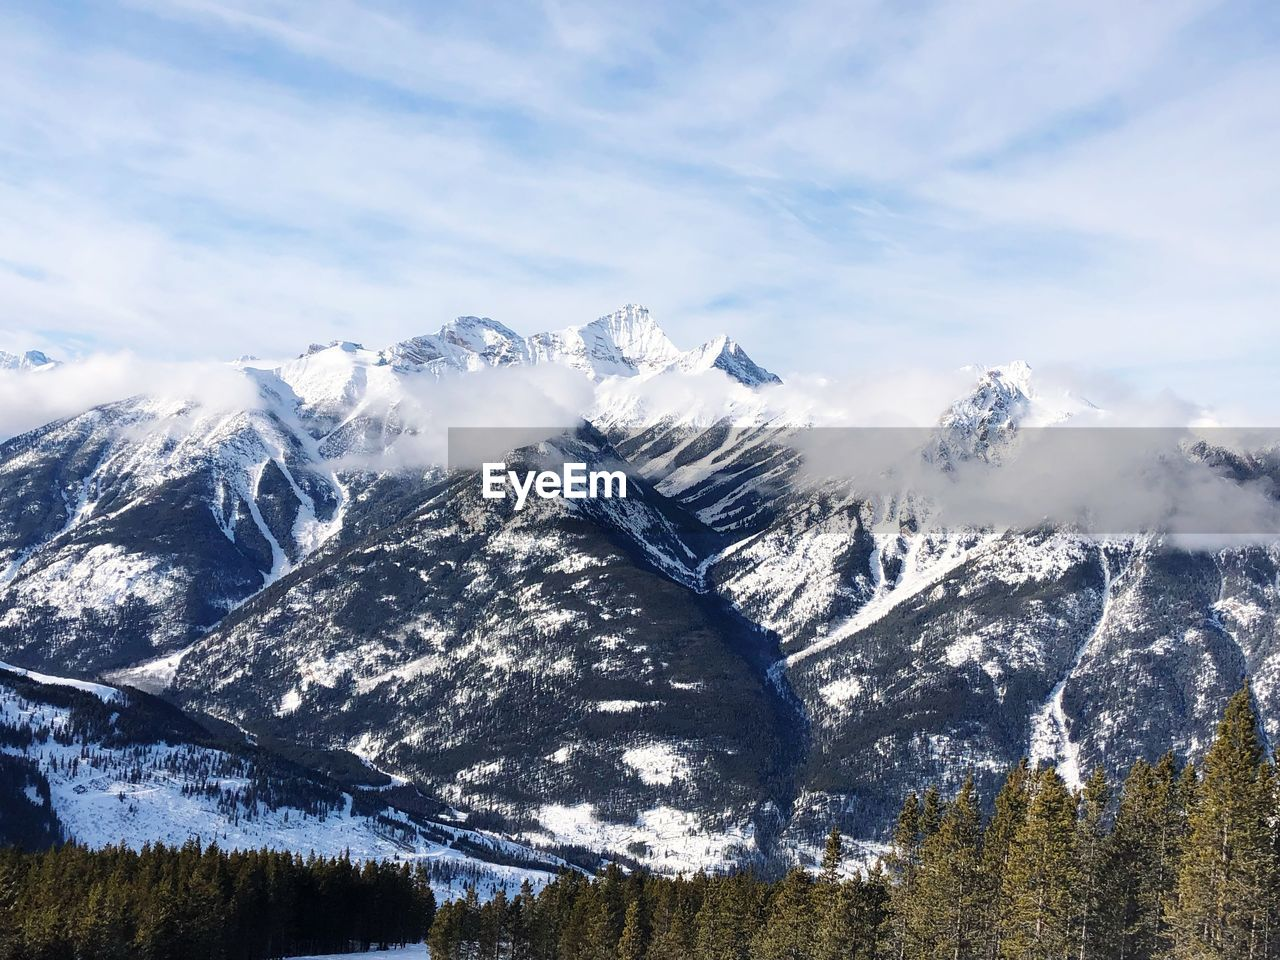 mountain, scenics - nature, winter, beauty in nature, cold temperature, sky, snow, tranquility, tranquil scene, environment, cloud - sky, snowcapped mountain, plant, non-urban scene, mountain range, landscape, tree, no people, nature, mountain peak, range